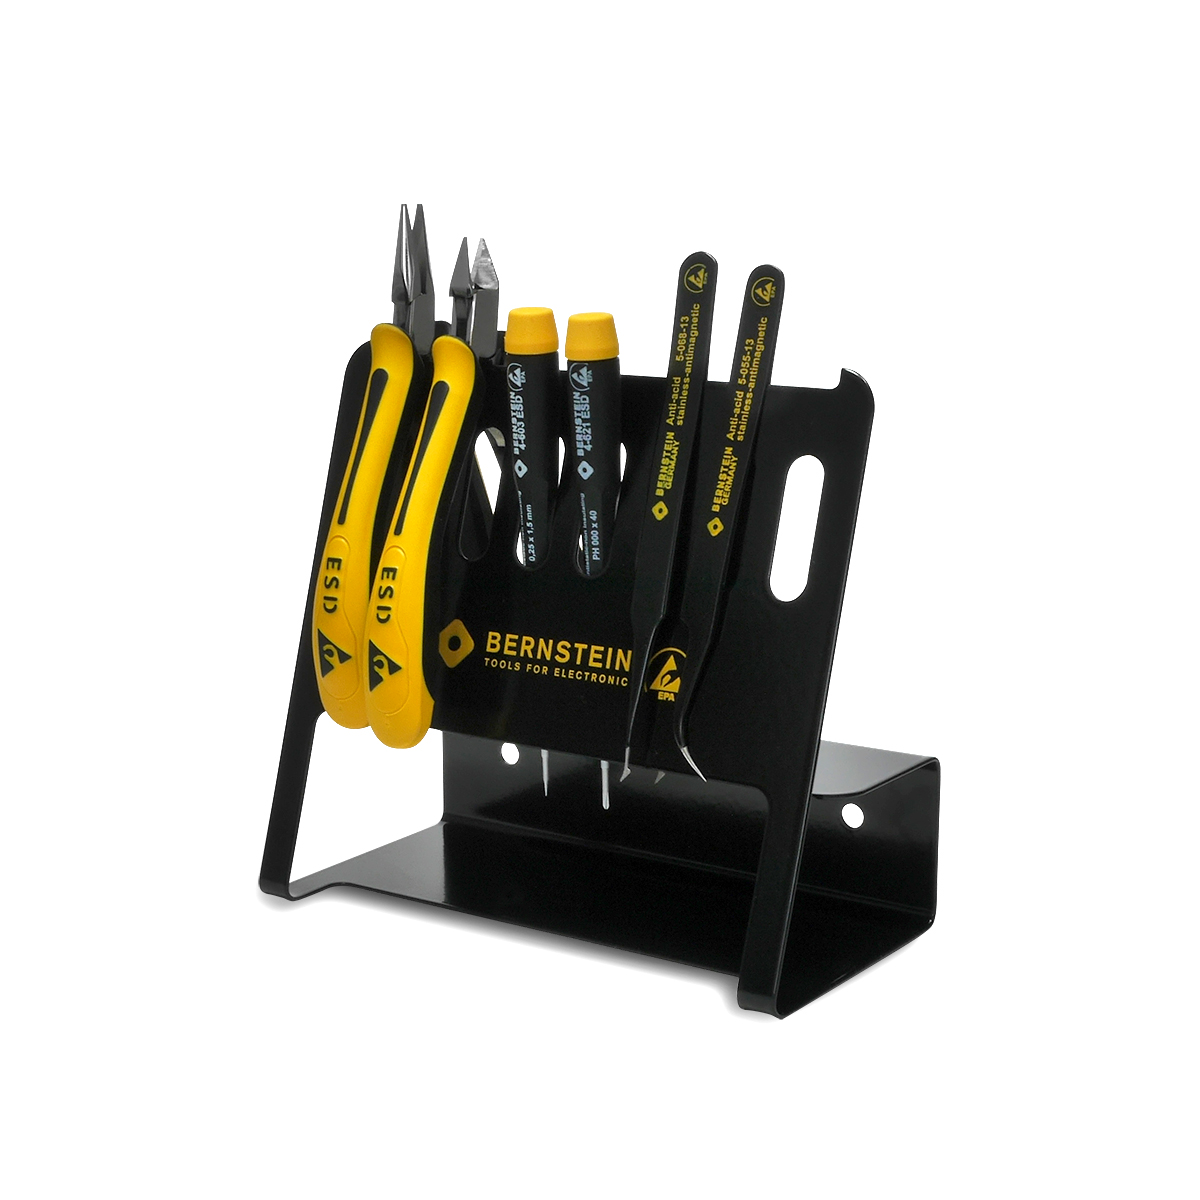 Bernstein 2100 ESD Tool Holder VARIO (6 Tools)